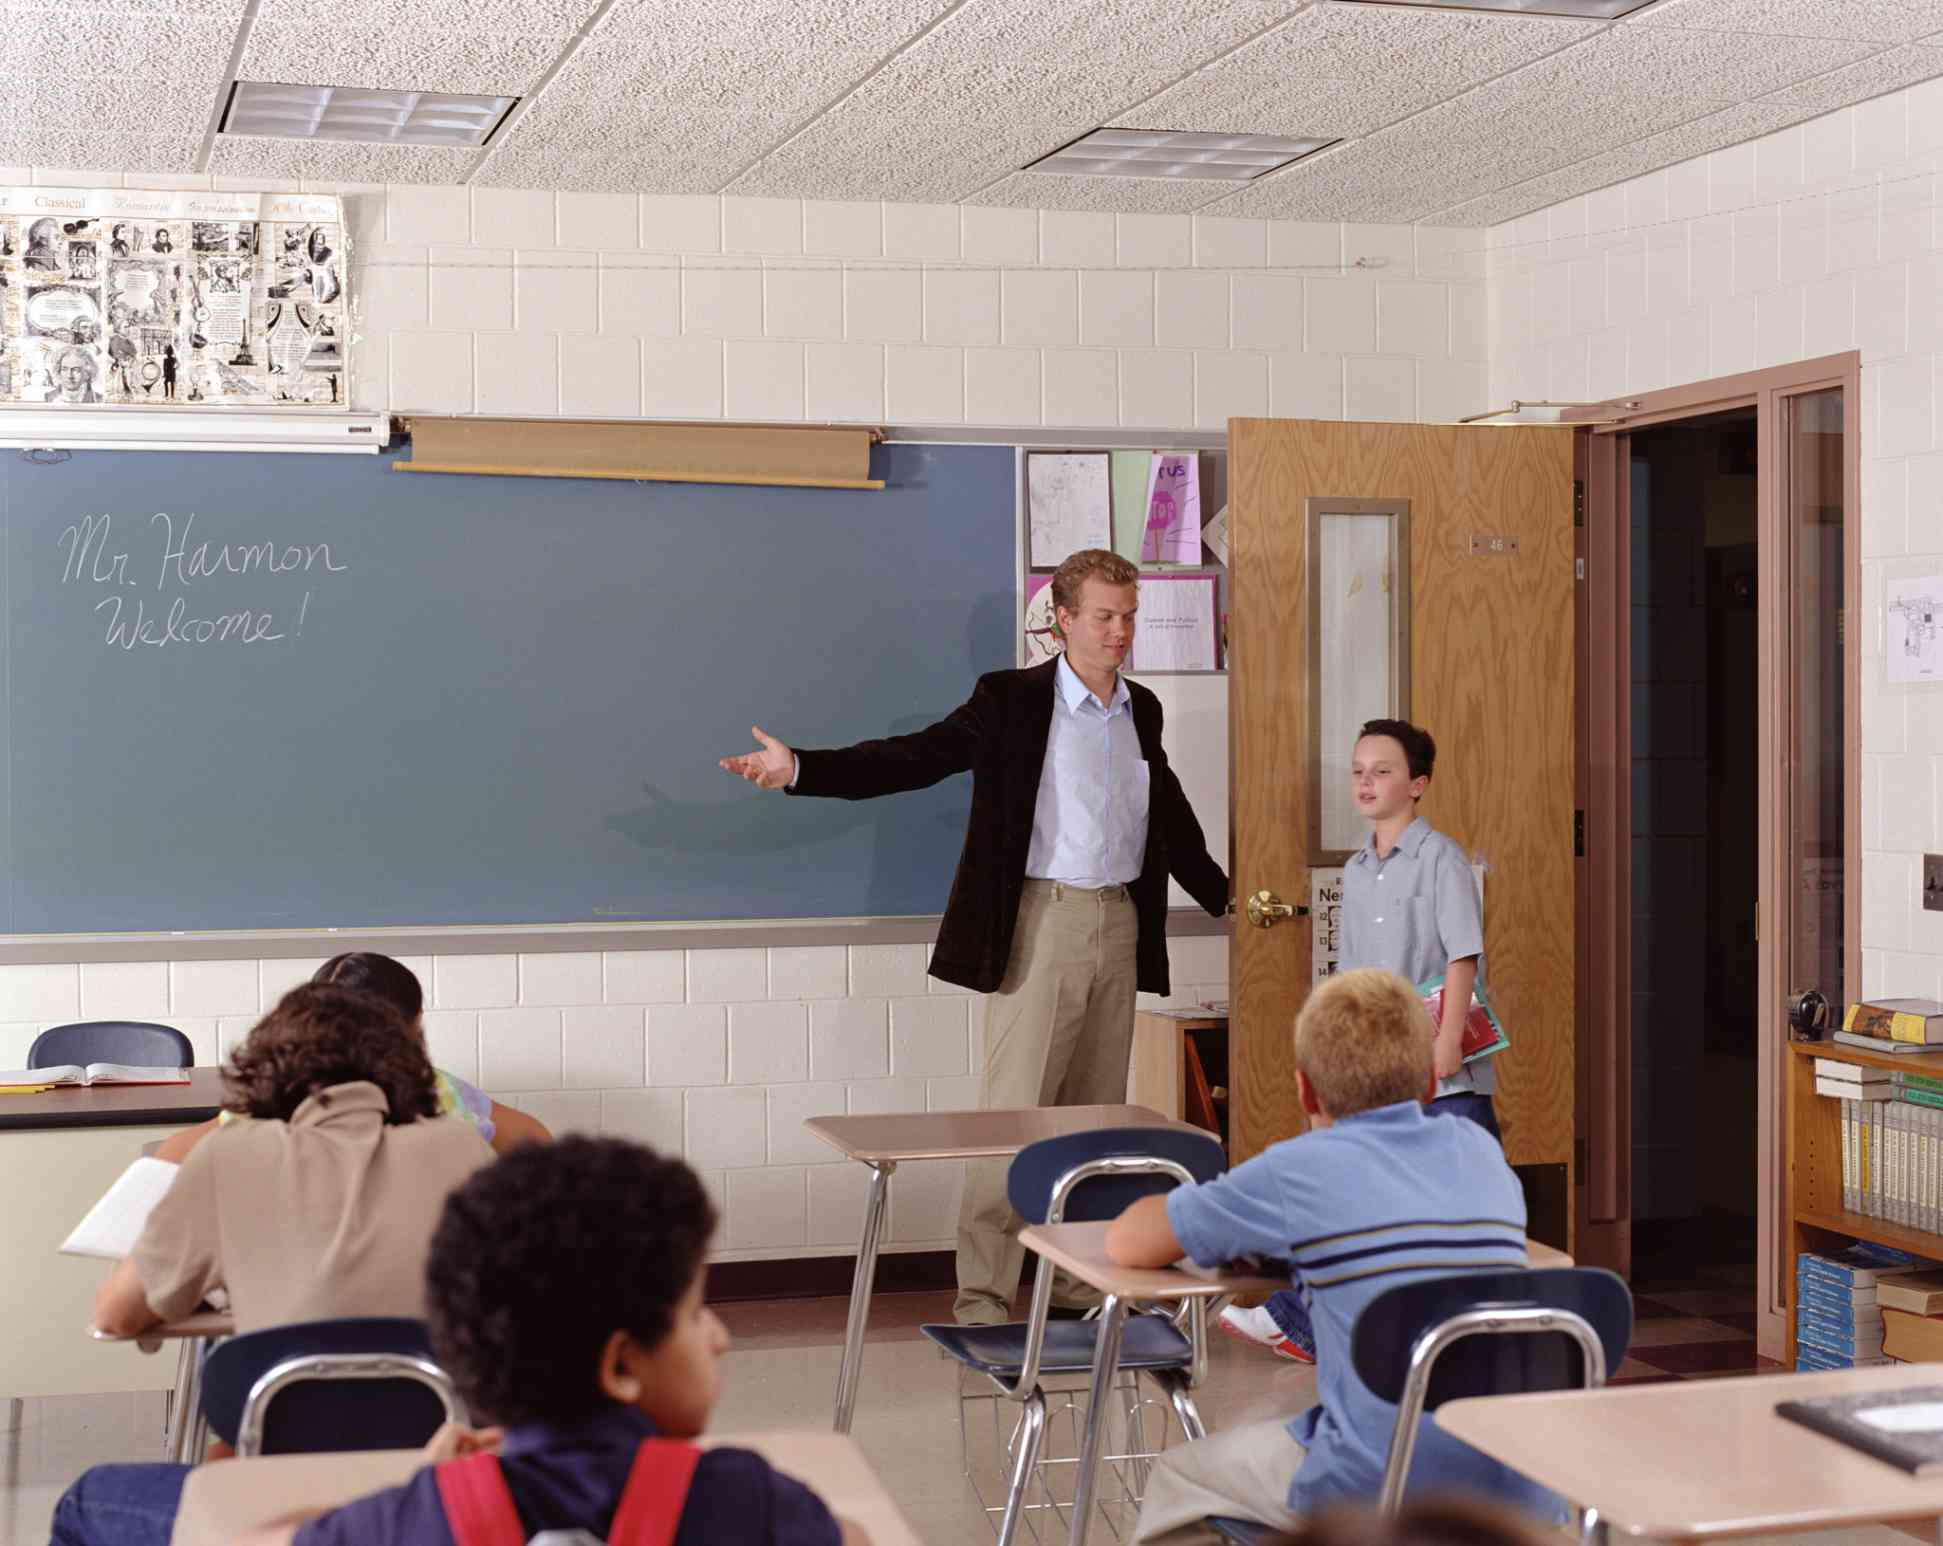 teacher letting a student into classroom